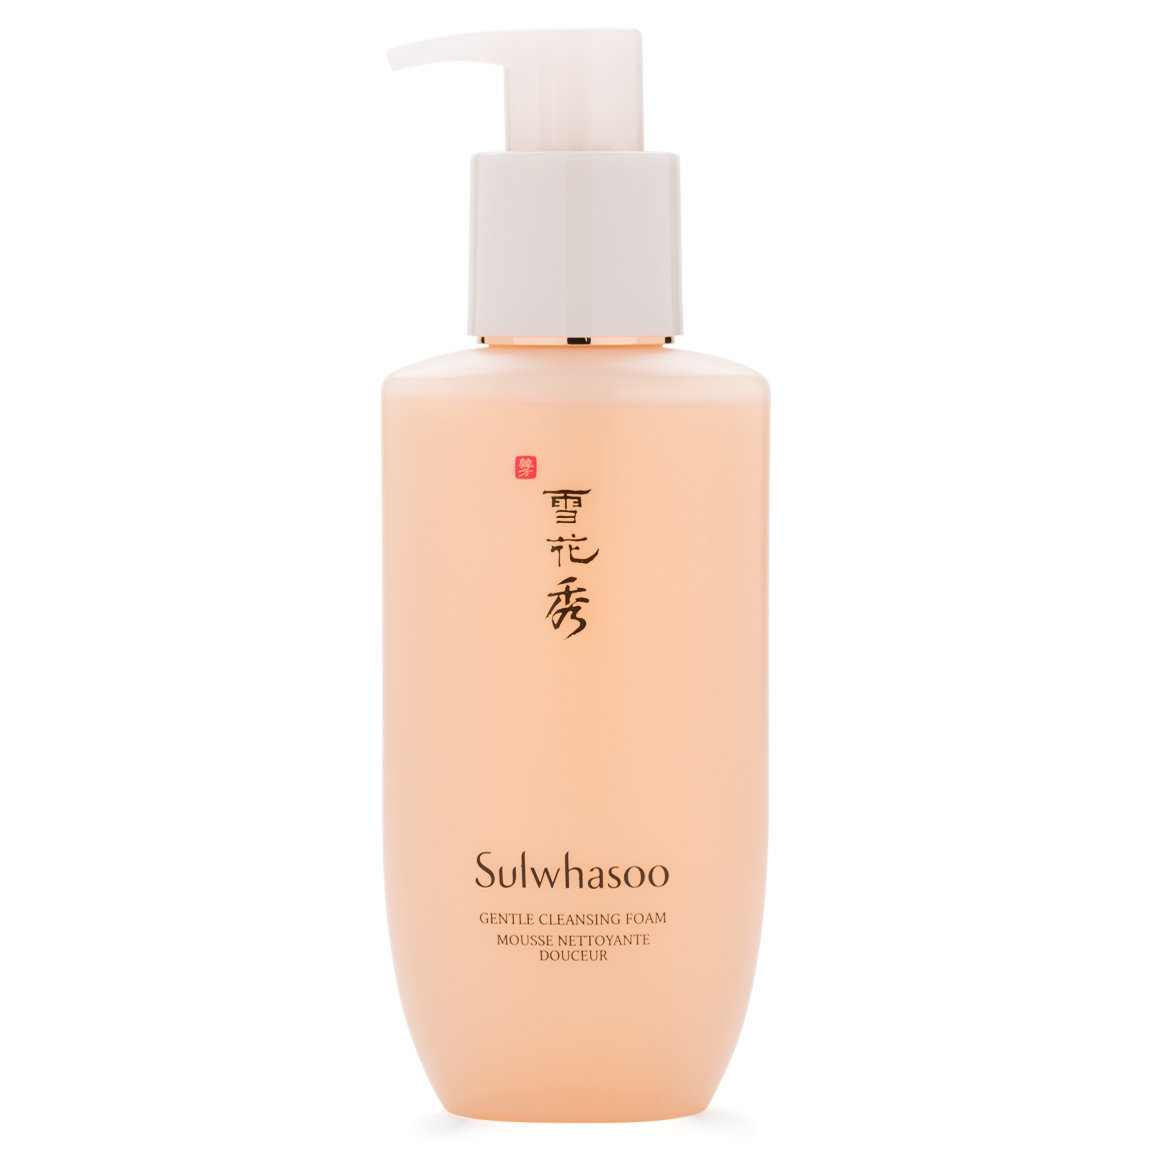 Sulwhasoo Gentle Cleansing Foam product swatch.